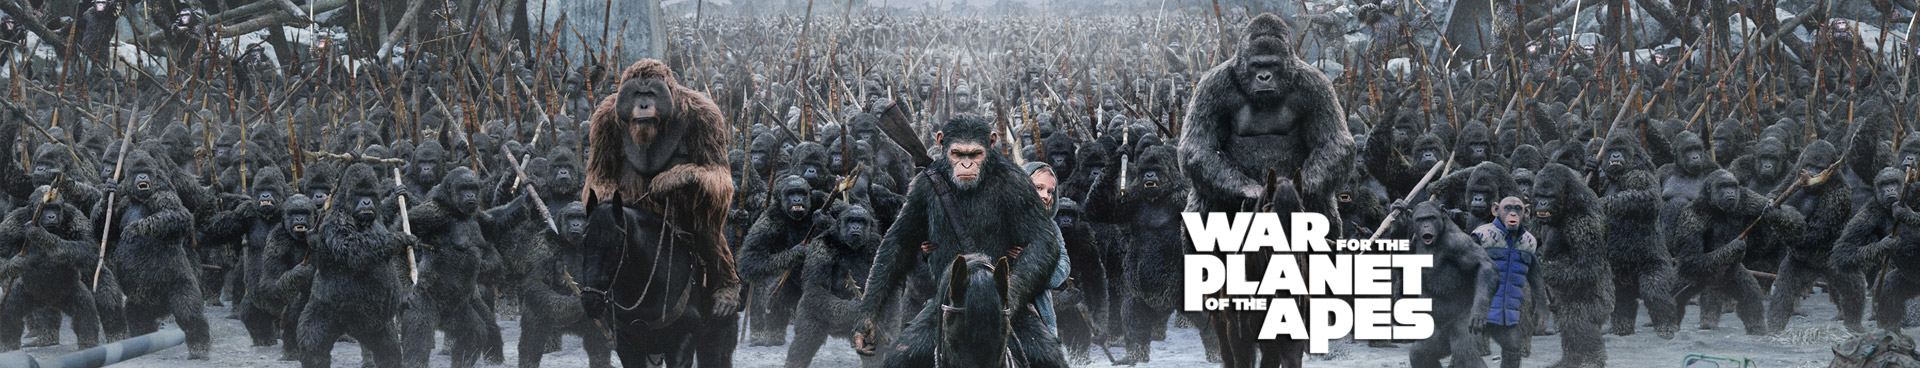 WAR FOR THE PLANET OF THE APES - HINDI ENGLISH 3D 4D